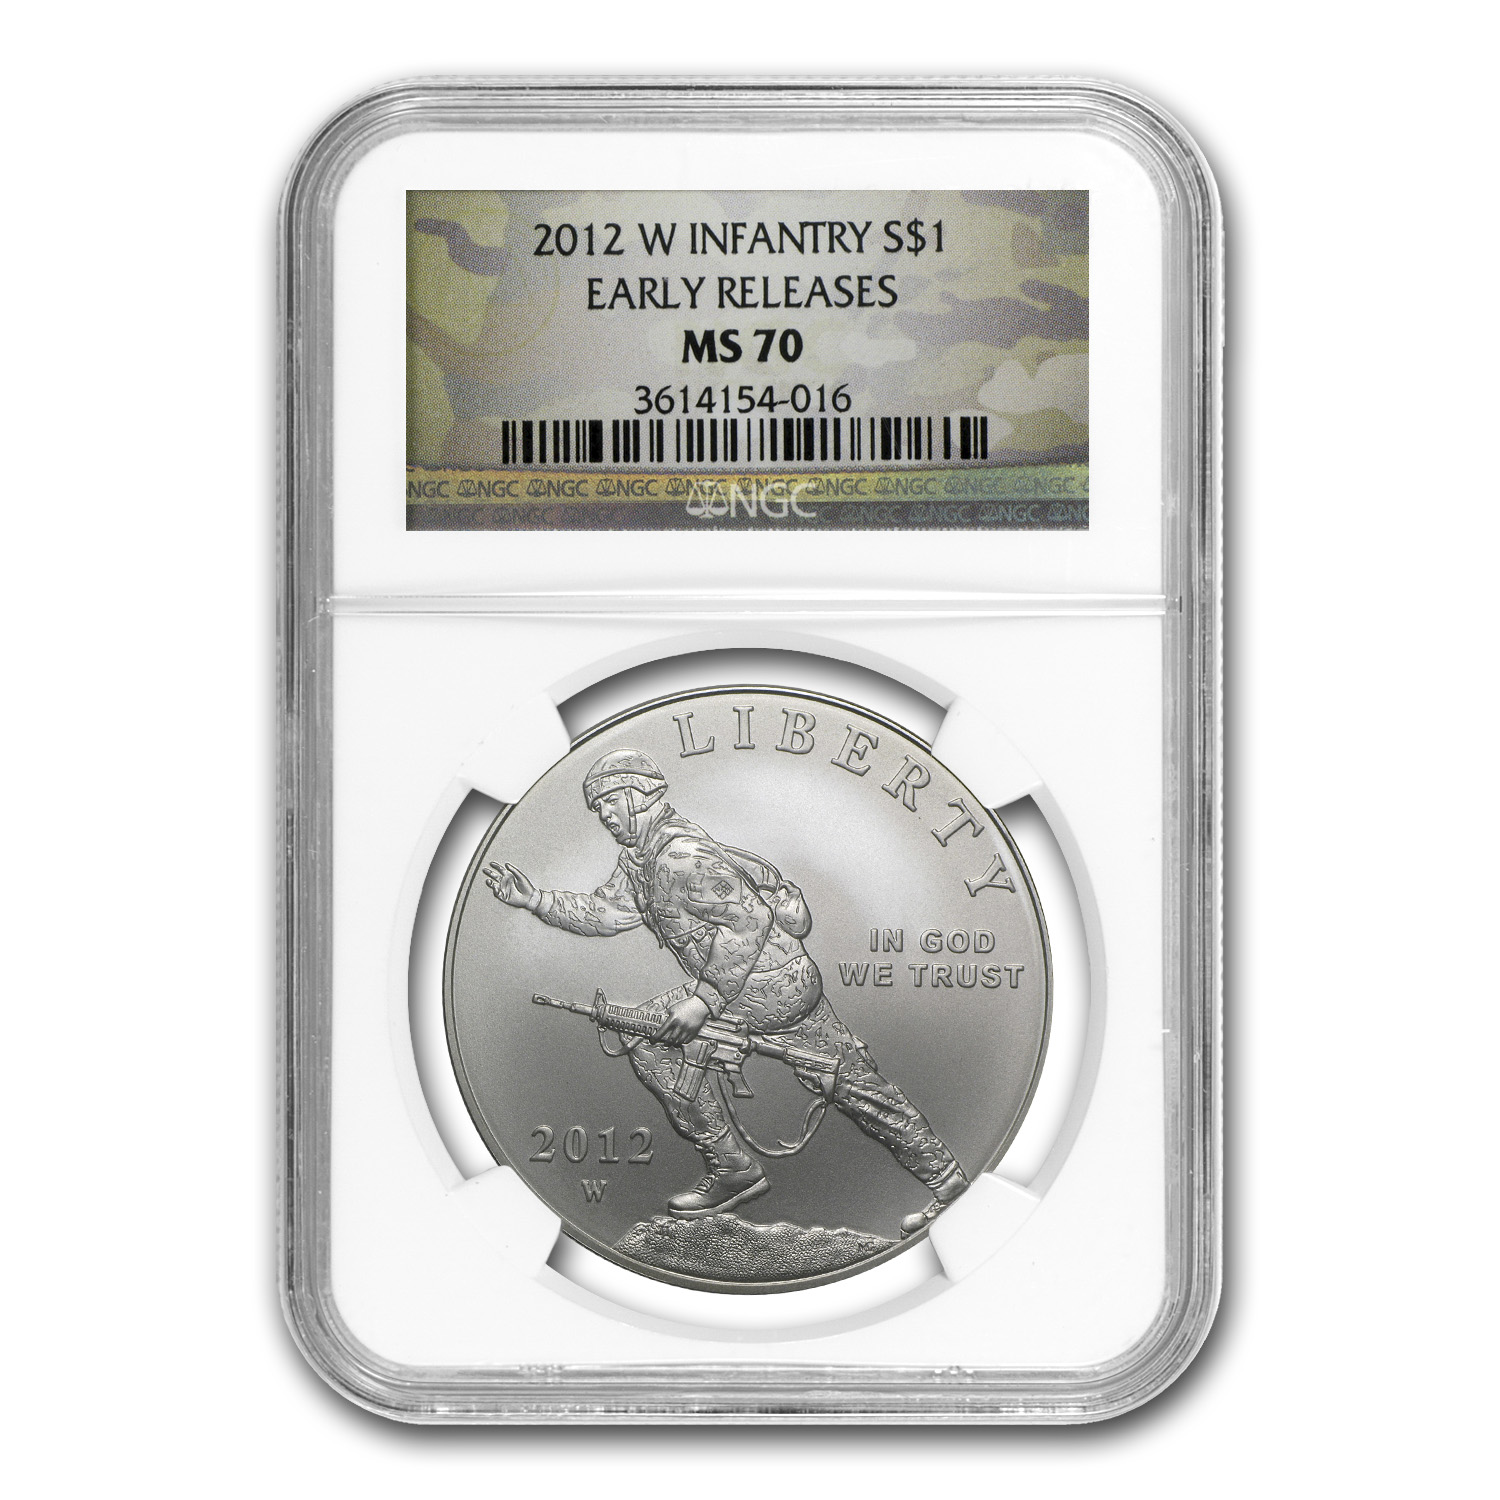 2012-W Infantry Soldier $1 Silver Commemorative MS-70 NGC